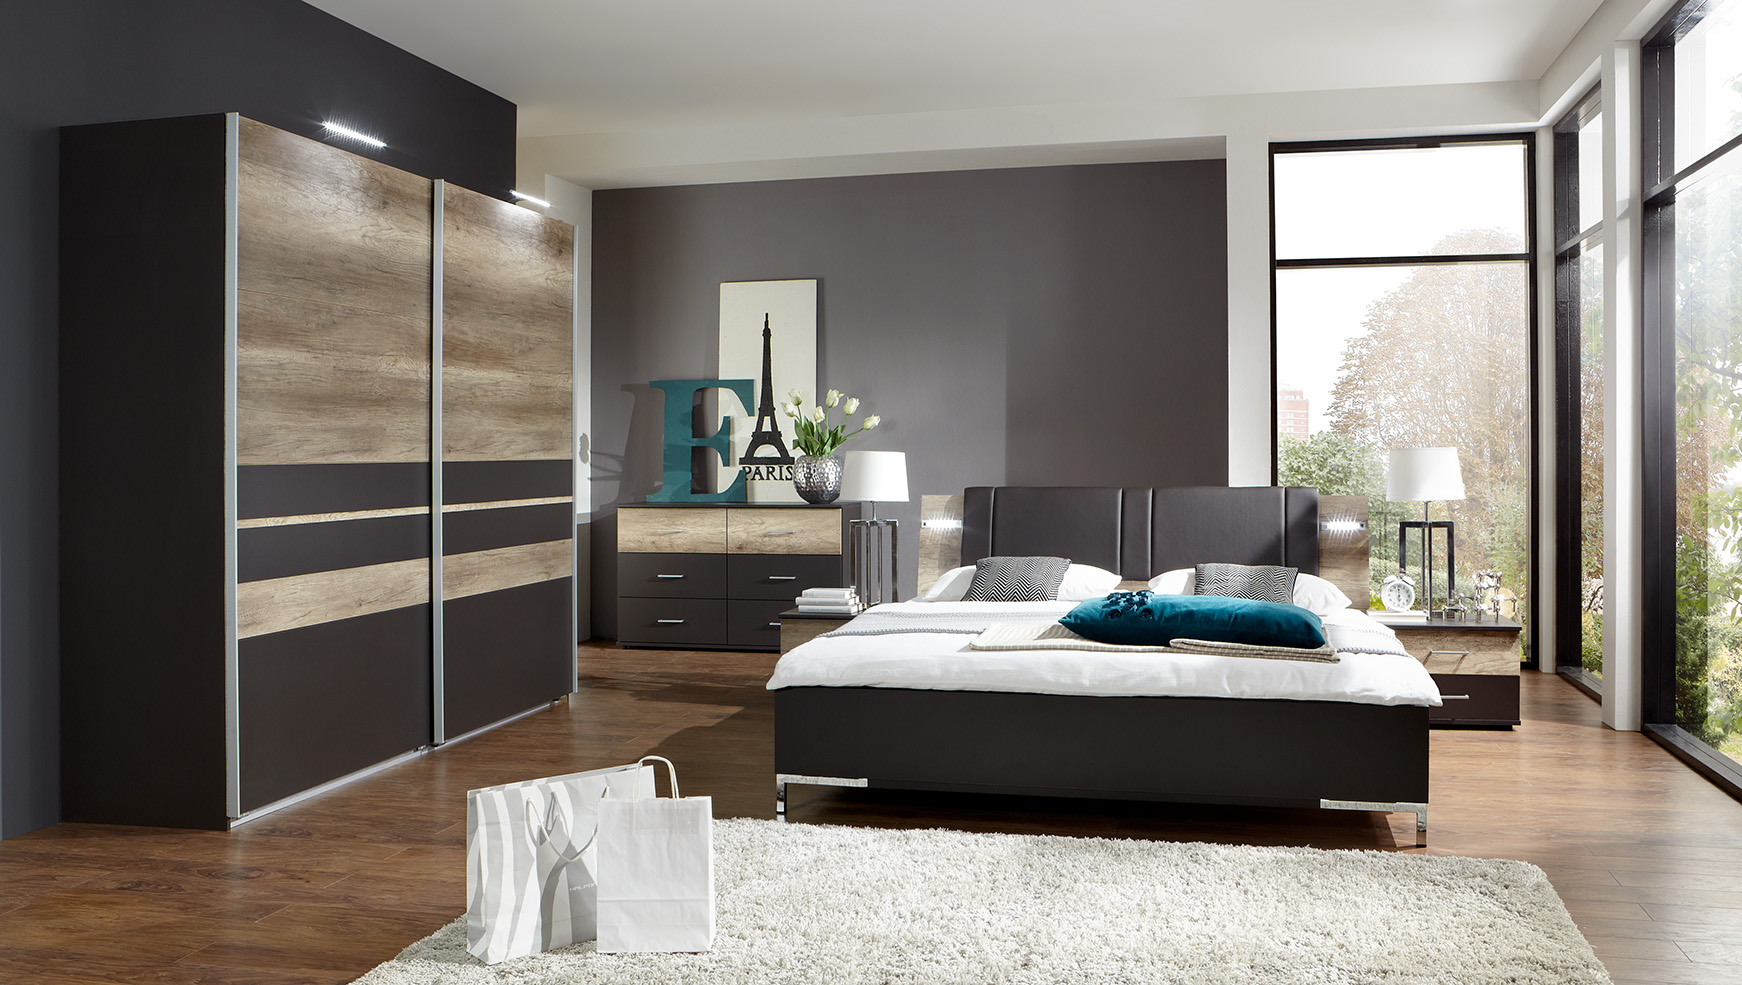 chambres a coucher bedroom 5 chambre a coucher chambre. Black Bedroom Furniture Sets. Home Design Ideas